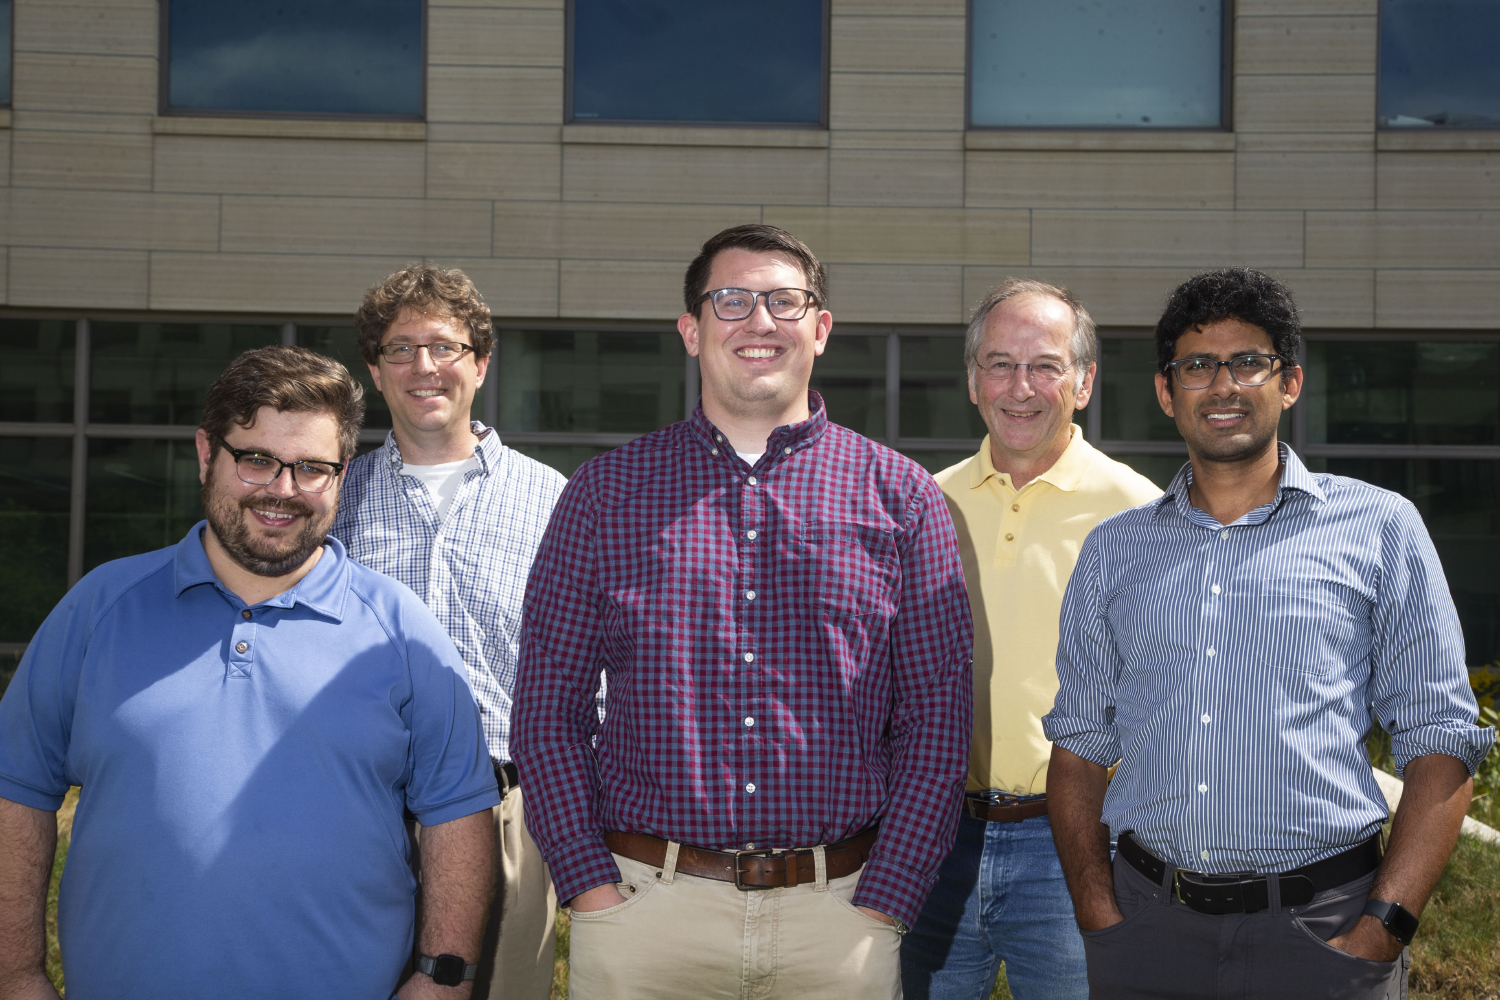 Researchers Philip Polgreen (top left), Jacob Simmering (bottom left), Jordan Schultz (center), Michael Welsh (top right) and Kumar Narayanan (bottom right) pose for a portrait outside of the Pappajohn Biomedical Discovery Building on Monday Sept. 16, 2019. (Katie Goodale/The Daily Iowan)